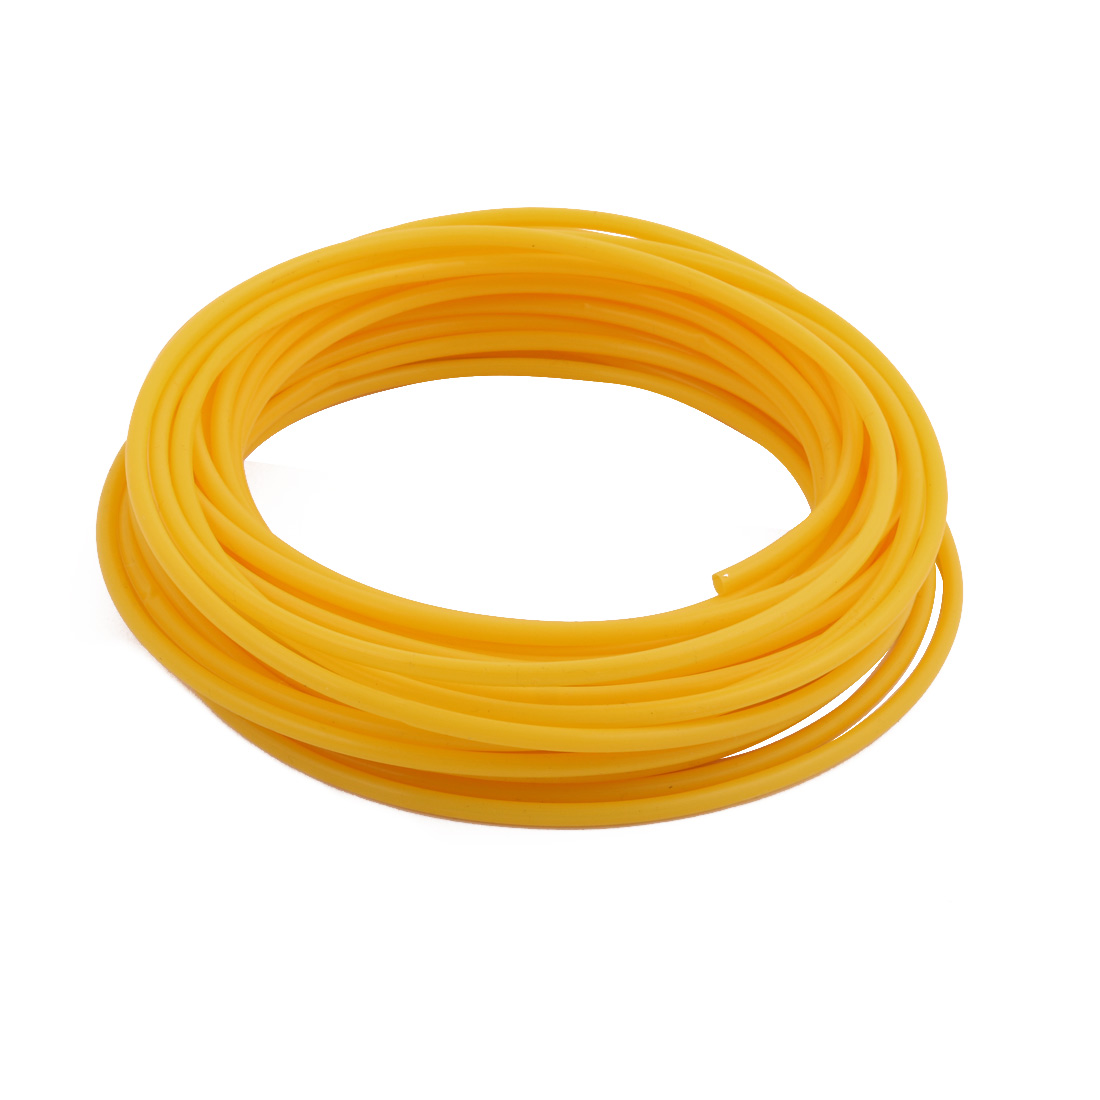 3.38mmx3.78mm PTFE Resistant High Temperature Yellow Tubing 10 Meters 32.8Ft